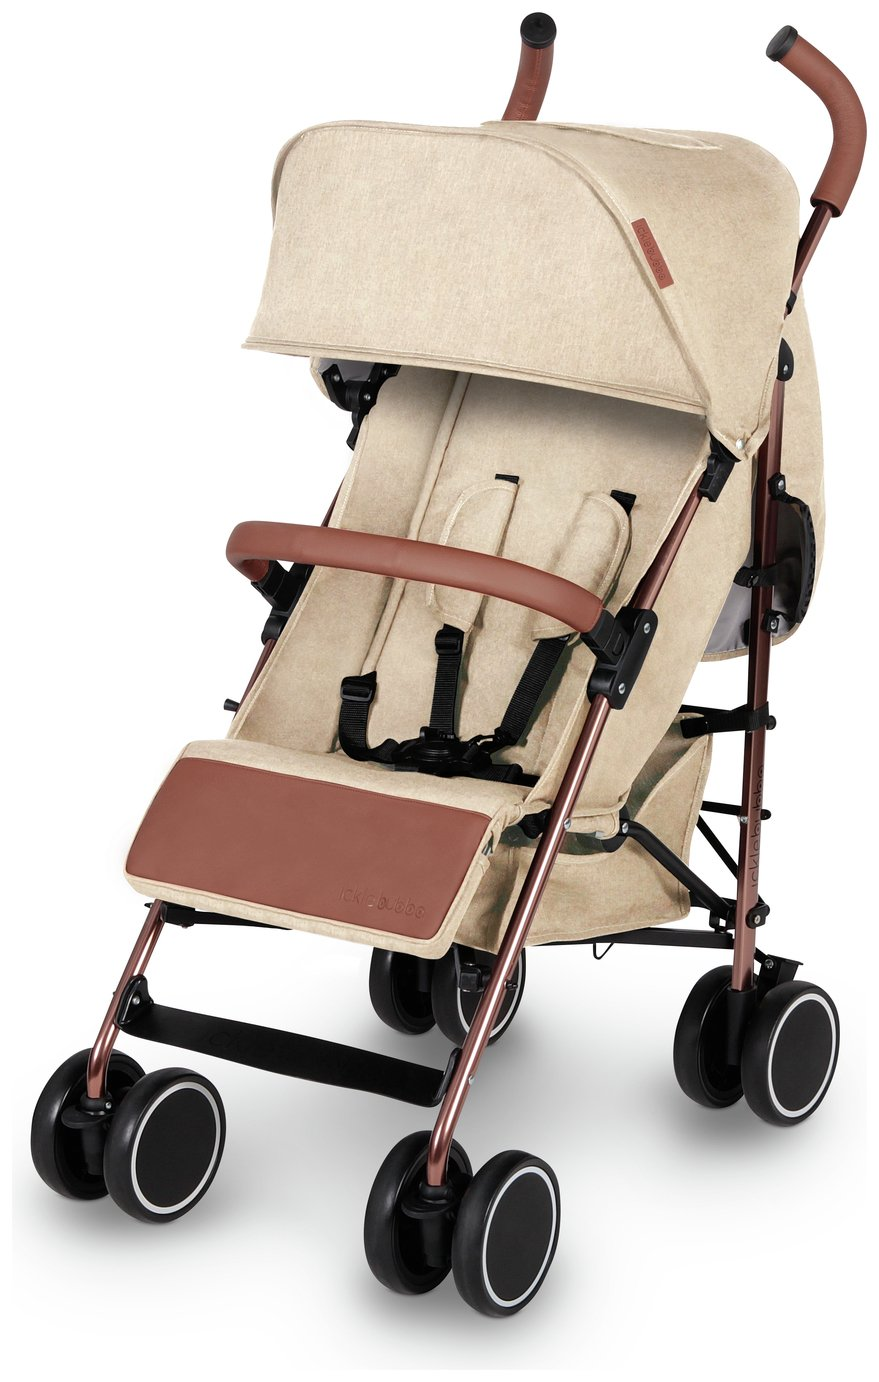 Ickle Bubba Discovery Stroller - Cream on Rose Gold